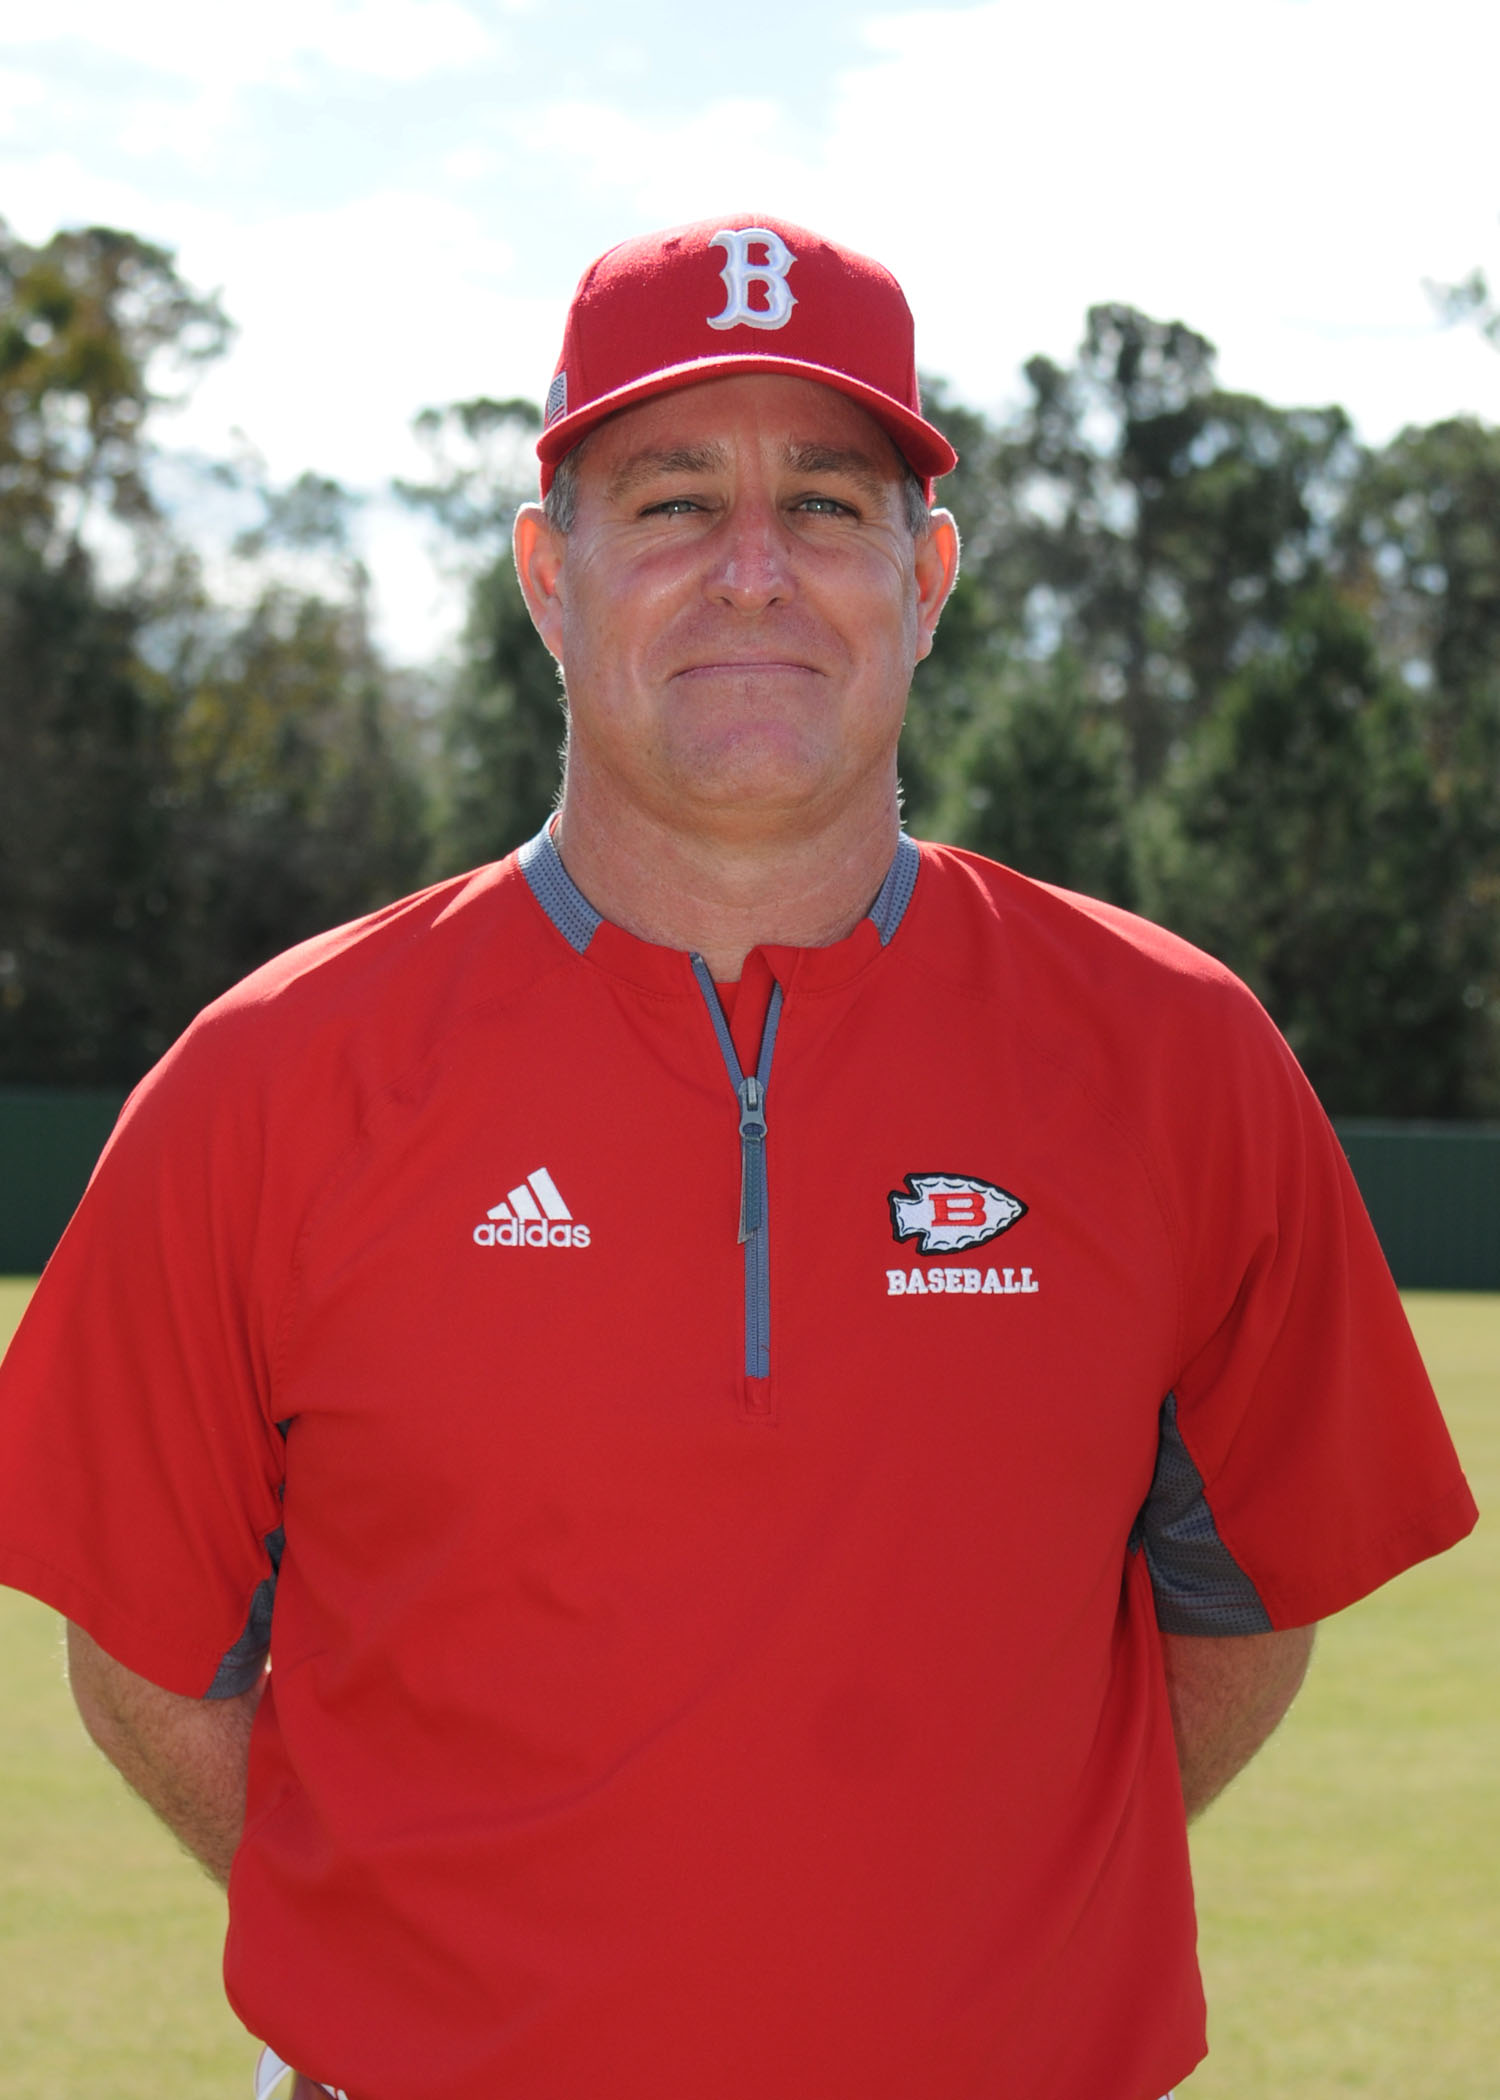 Brian Goodman - Coaching History:  1998-1999 Assistant Baseball Coach St. Andrews Episcopal School1999-2000 Assistant Fast-Pitch Softball Coach Newton County High School2000-2012 Head Baseball at Lake High School2012-2014 Head Baseball at Puckett High School2014-2017 Head Baseball at Quitman High School2017- Present Assistant Baseball Coach Biloxi High School        Education/Experience: BS in Secondary Education from Mississippi CollegeMajor: Social Studies Minor: Driver Education, Physical Education, HealthMS in Interscholastic Athletic Administration at University of Southern MississippiOutlook for 2018: I am extremely excited to get this season underway and continue to build on the traditions of Biloxi Indian Baseball. We have a great group of young men that has worked extremely hard this off season whether it was in the weightroom or the field. I am anxious to be able to watch these young men compete in each game we play this year. It is awesome to be part of a coaching staff that is dedicated in developing young men on and off the field.